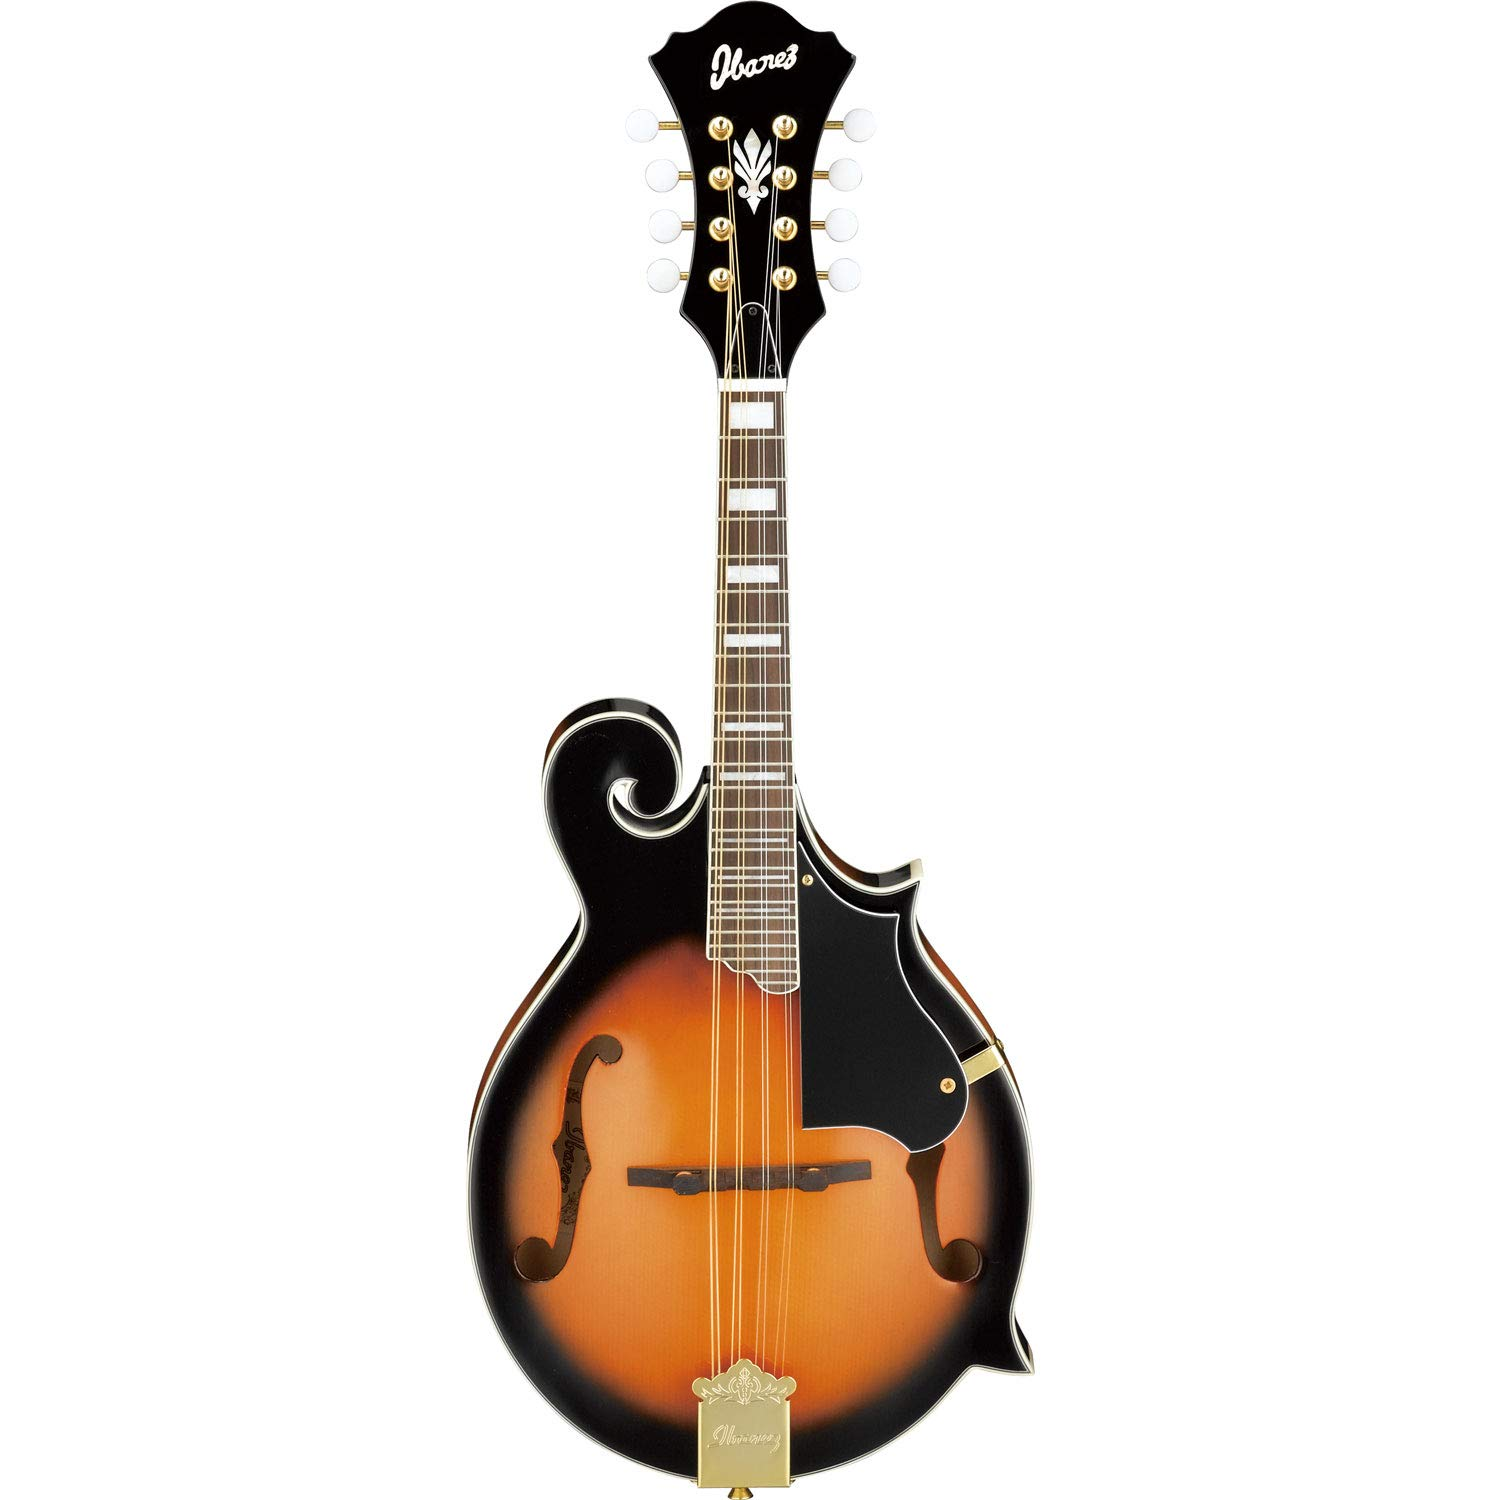 Ibanez 8-String M510EDVS Acoustic Electric A Style Mandolin Tuner and Gig Bag Dark Violin Sunburst with Strings